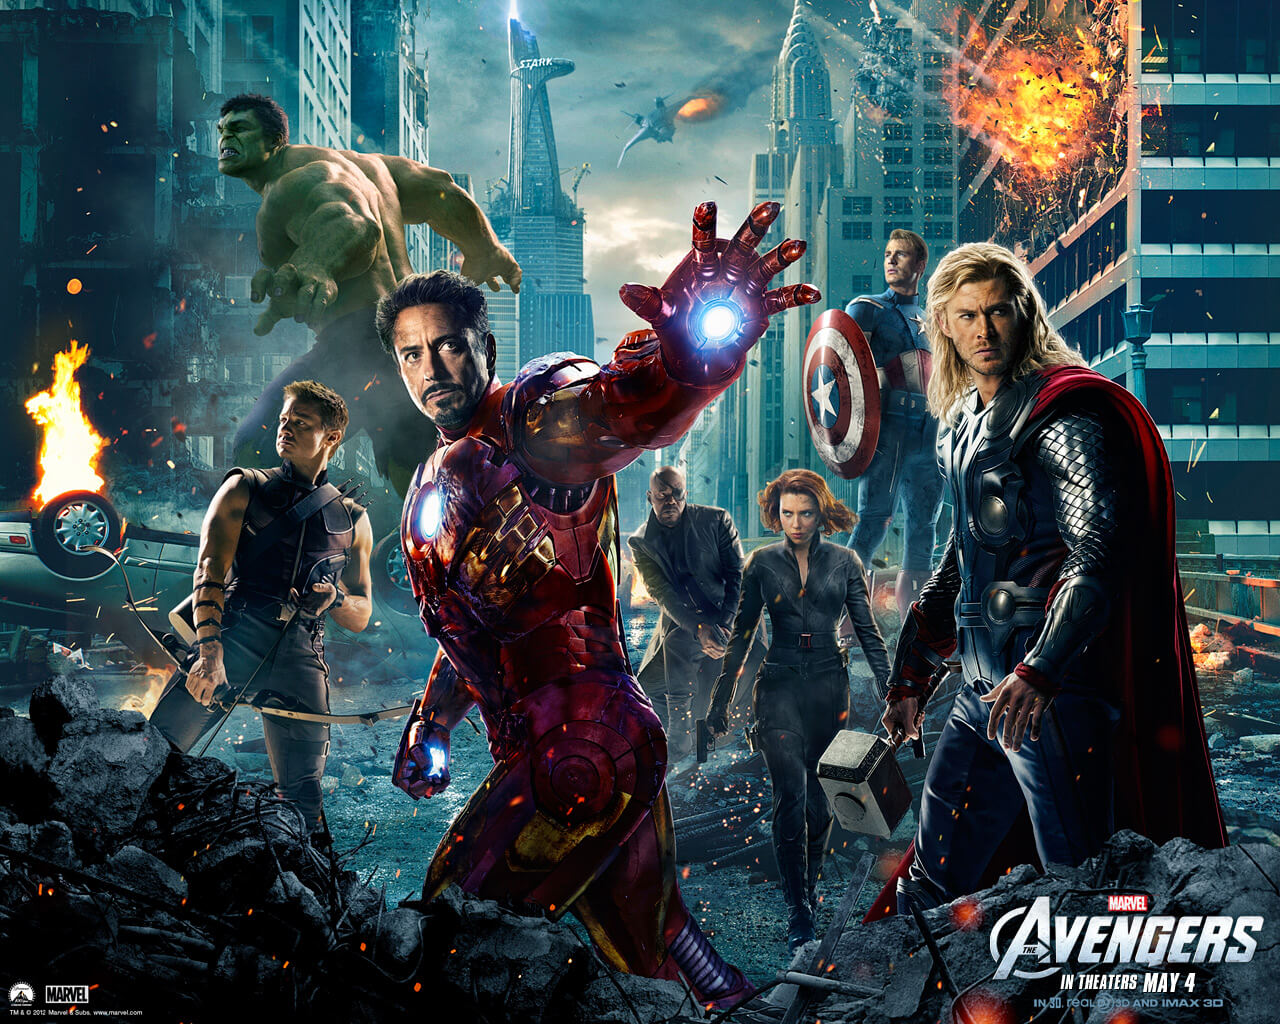 At the movies: *The Avengers*